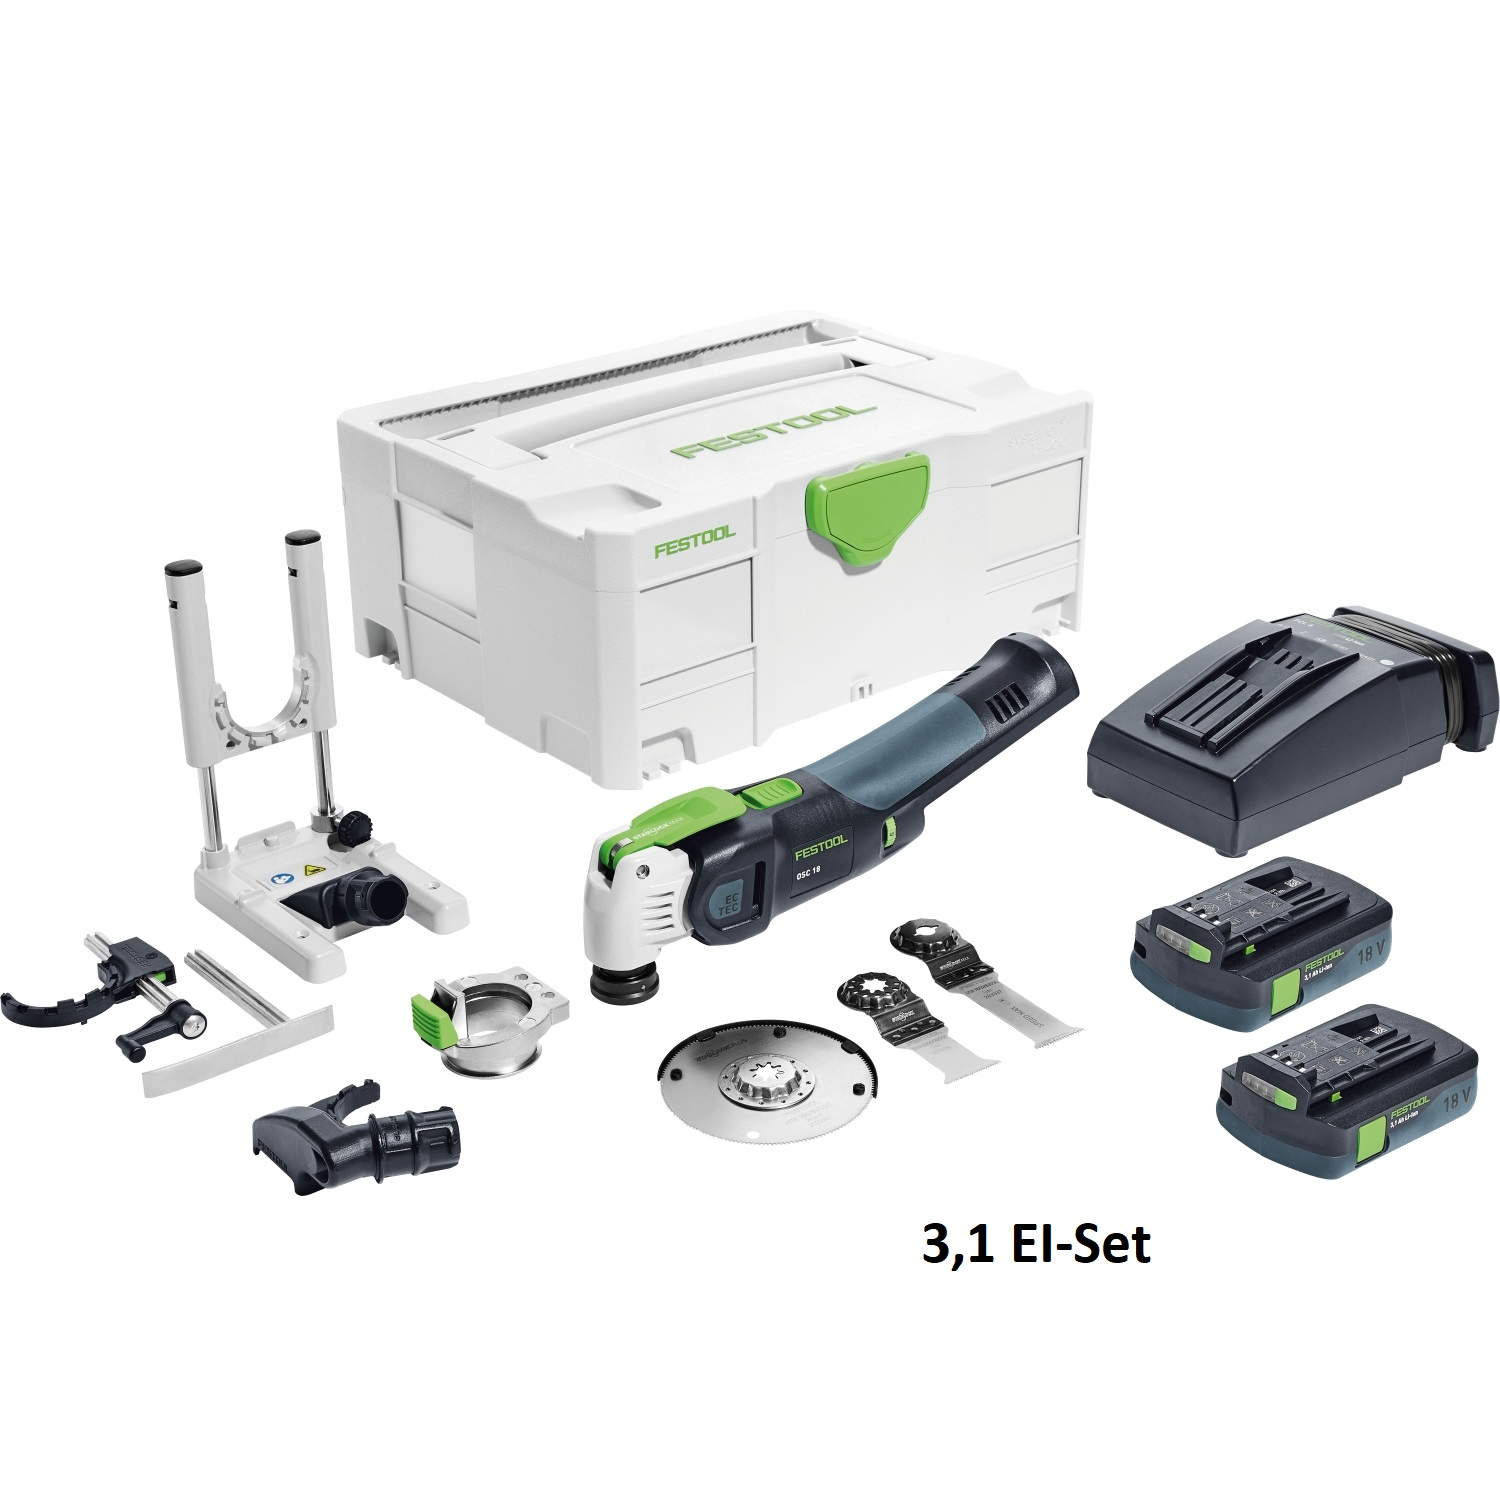 Festool 574855 Vecturo Cordless Multitool 3,1 EI-Set with depth stop and battery packs